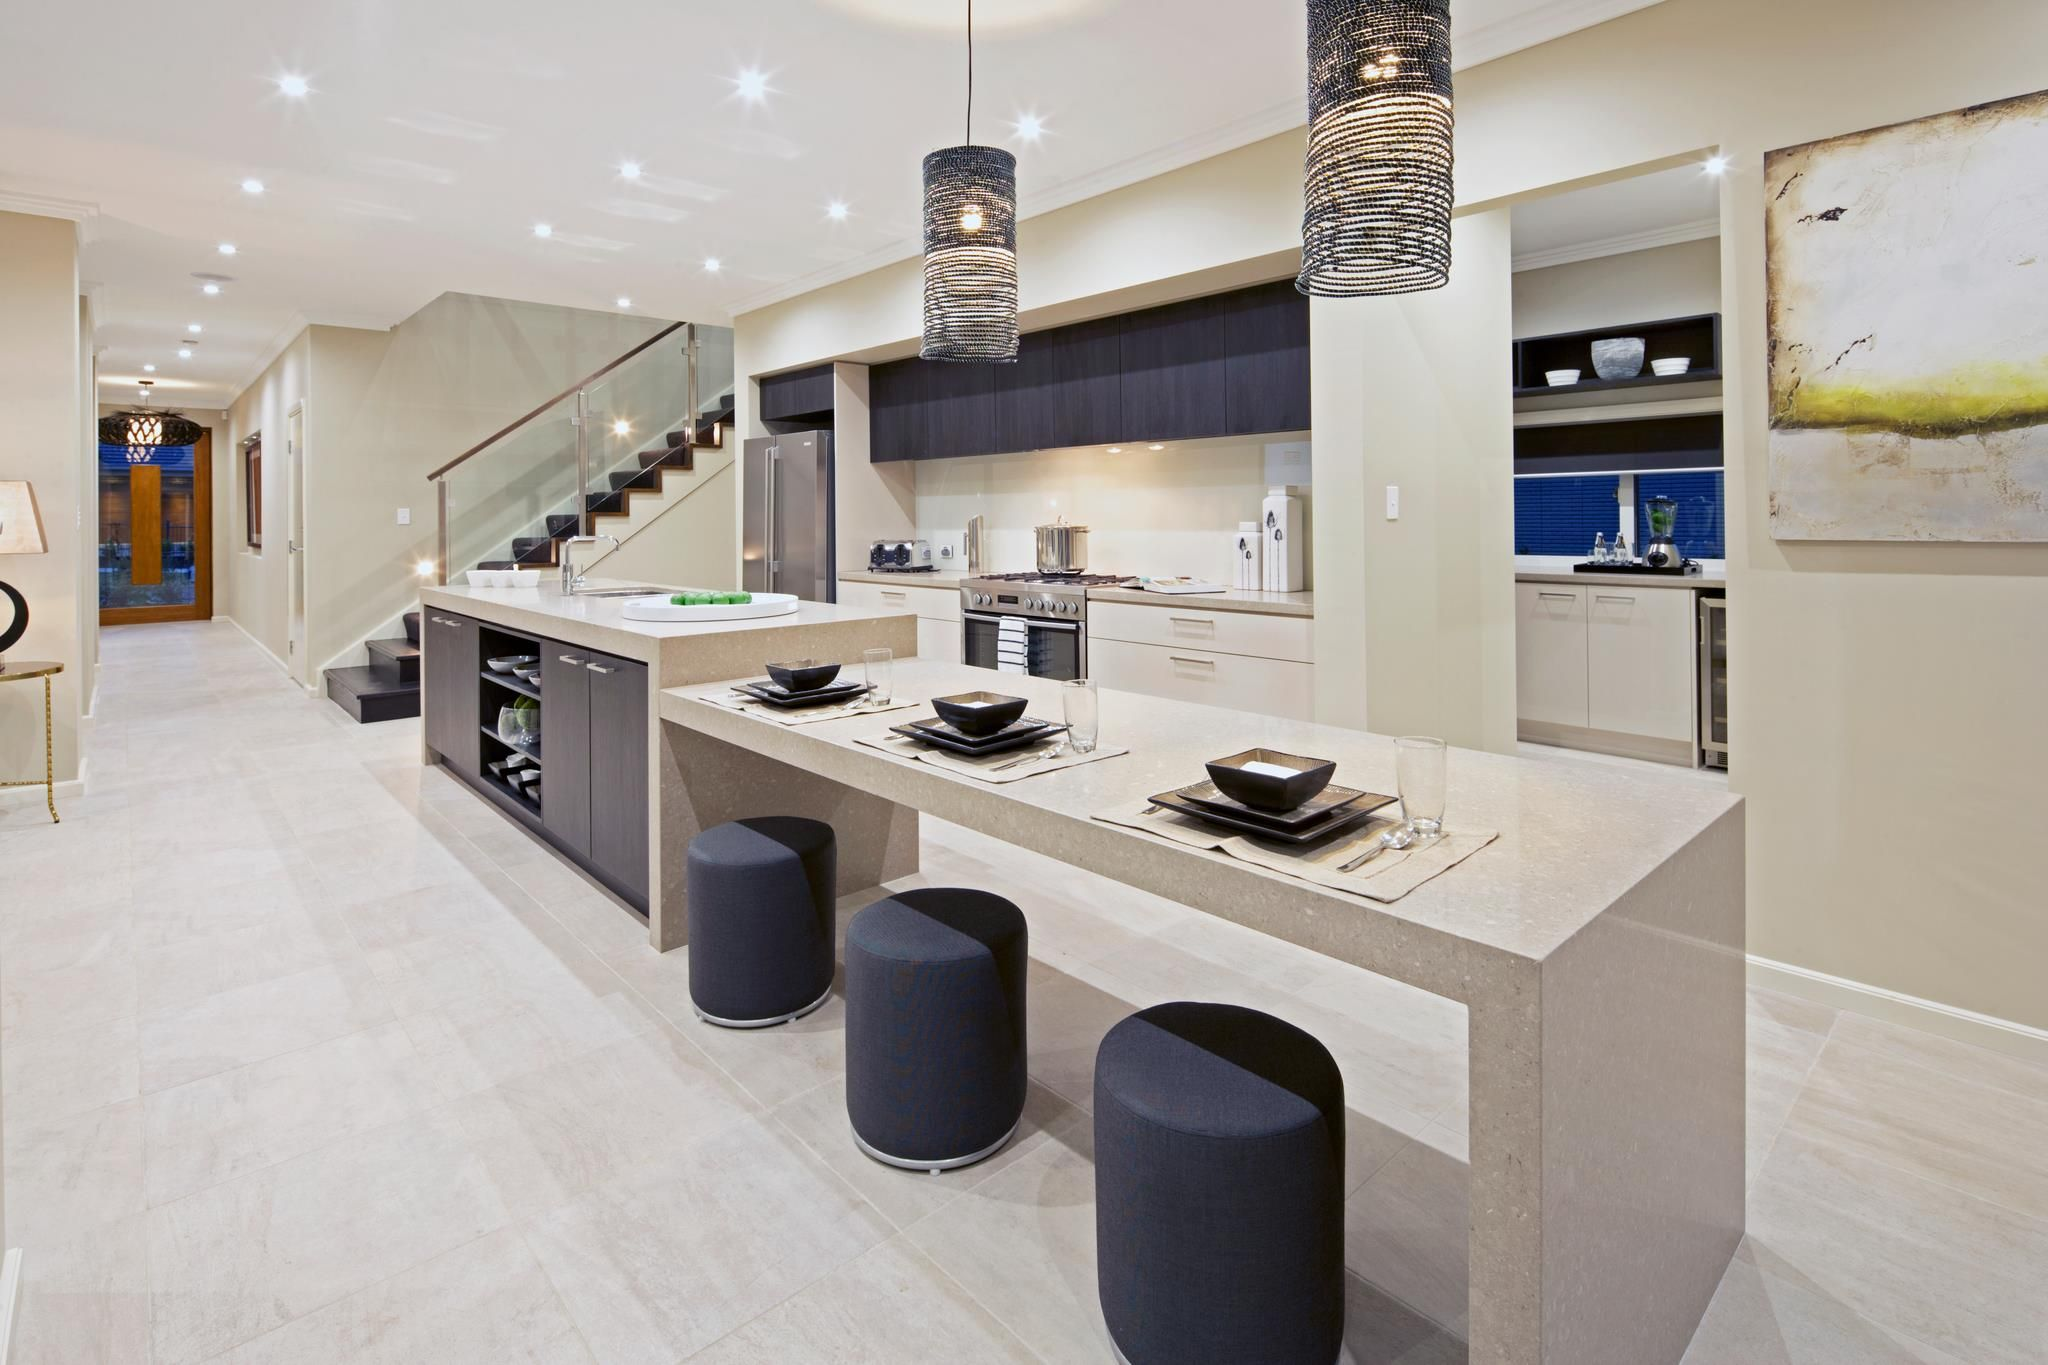 7 Kitchen Design Ideas To Create The Ultimate Entertainer S Kitchen Kitchen Modern Kitchen Design Kitchen Island Bench Modern Kitchen Island